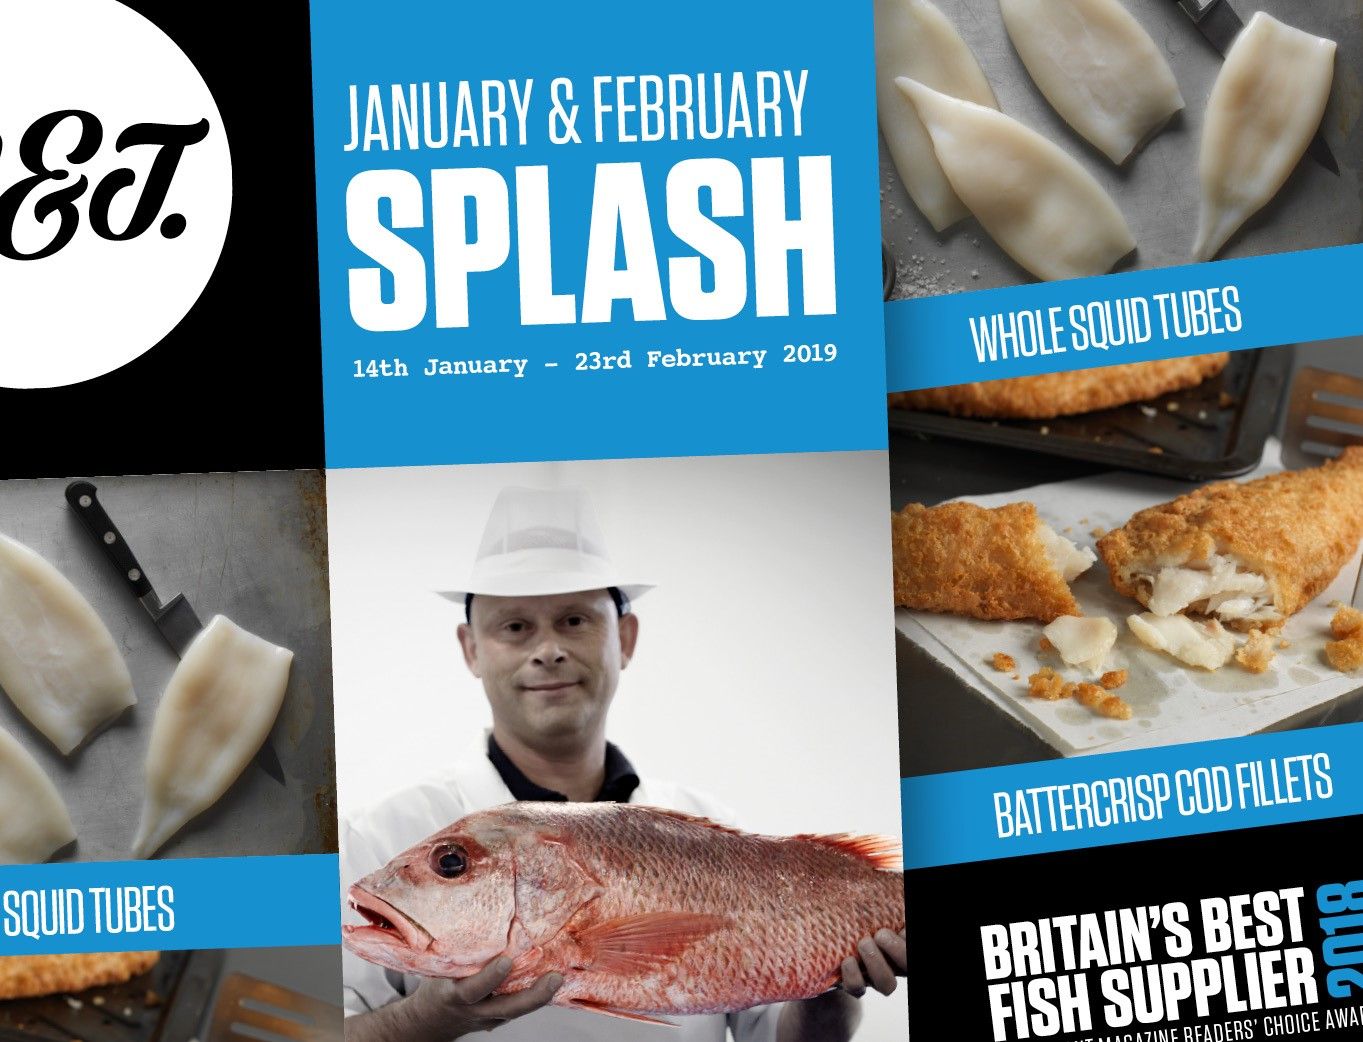 Splash January & February